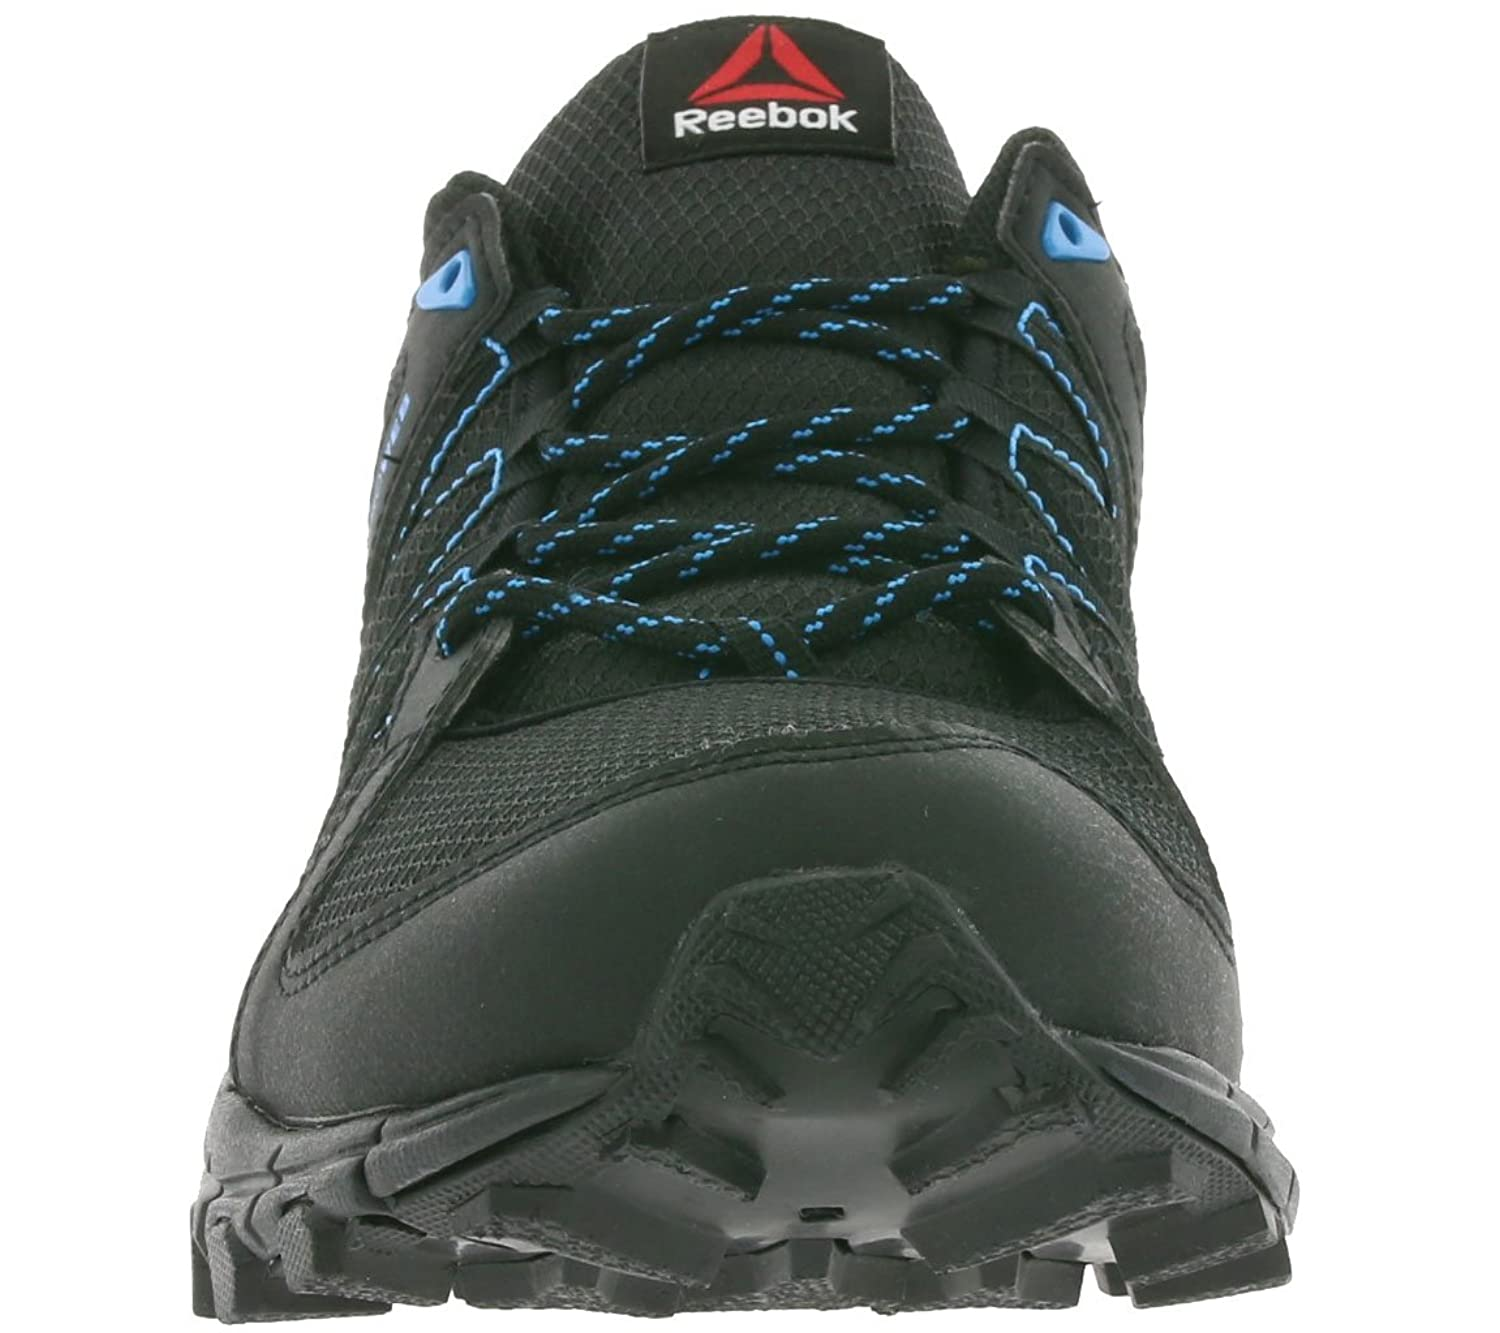 reebok trekking shoes